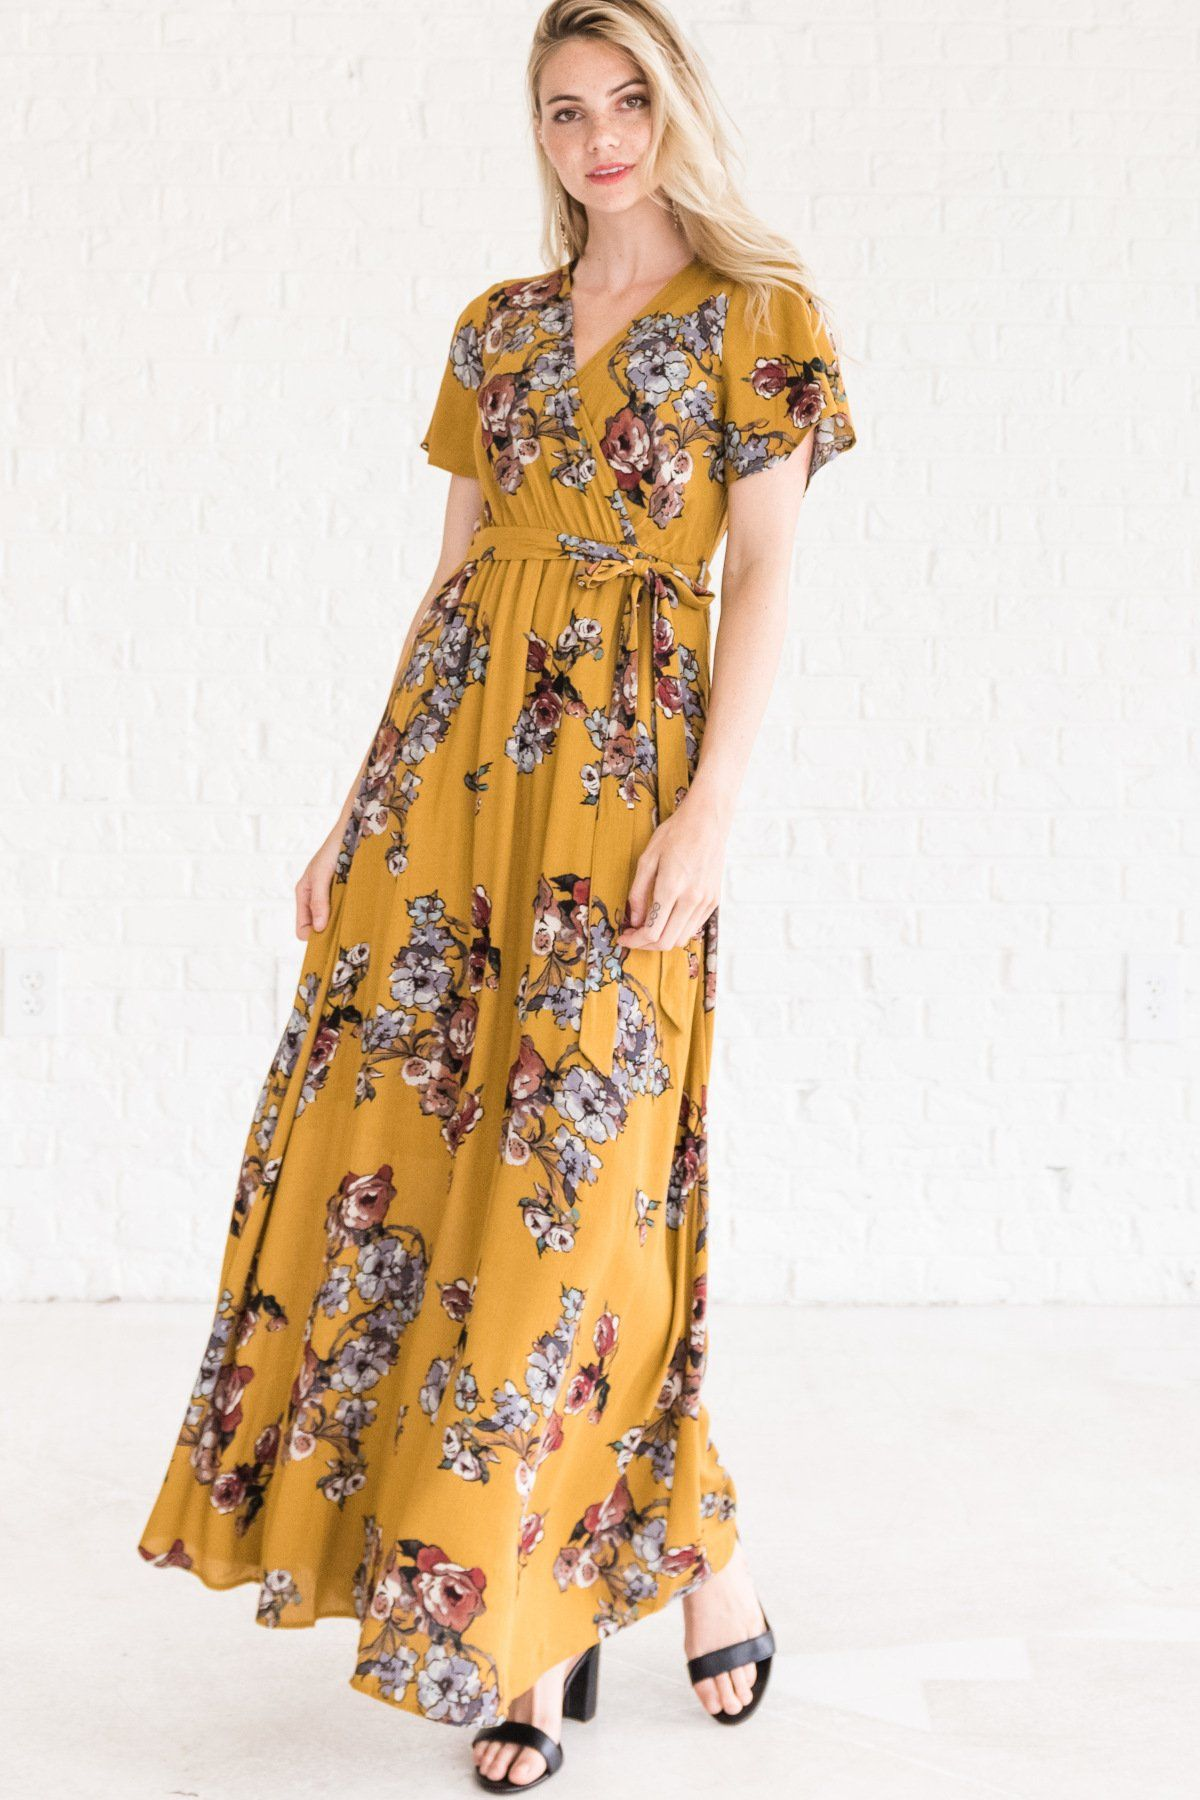 b529b2c1d603 If Only Mustard Floral Maxi Dress in 2019 | •bella ella style ...